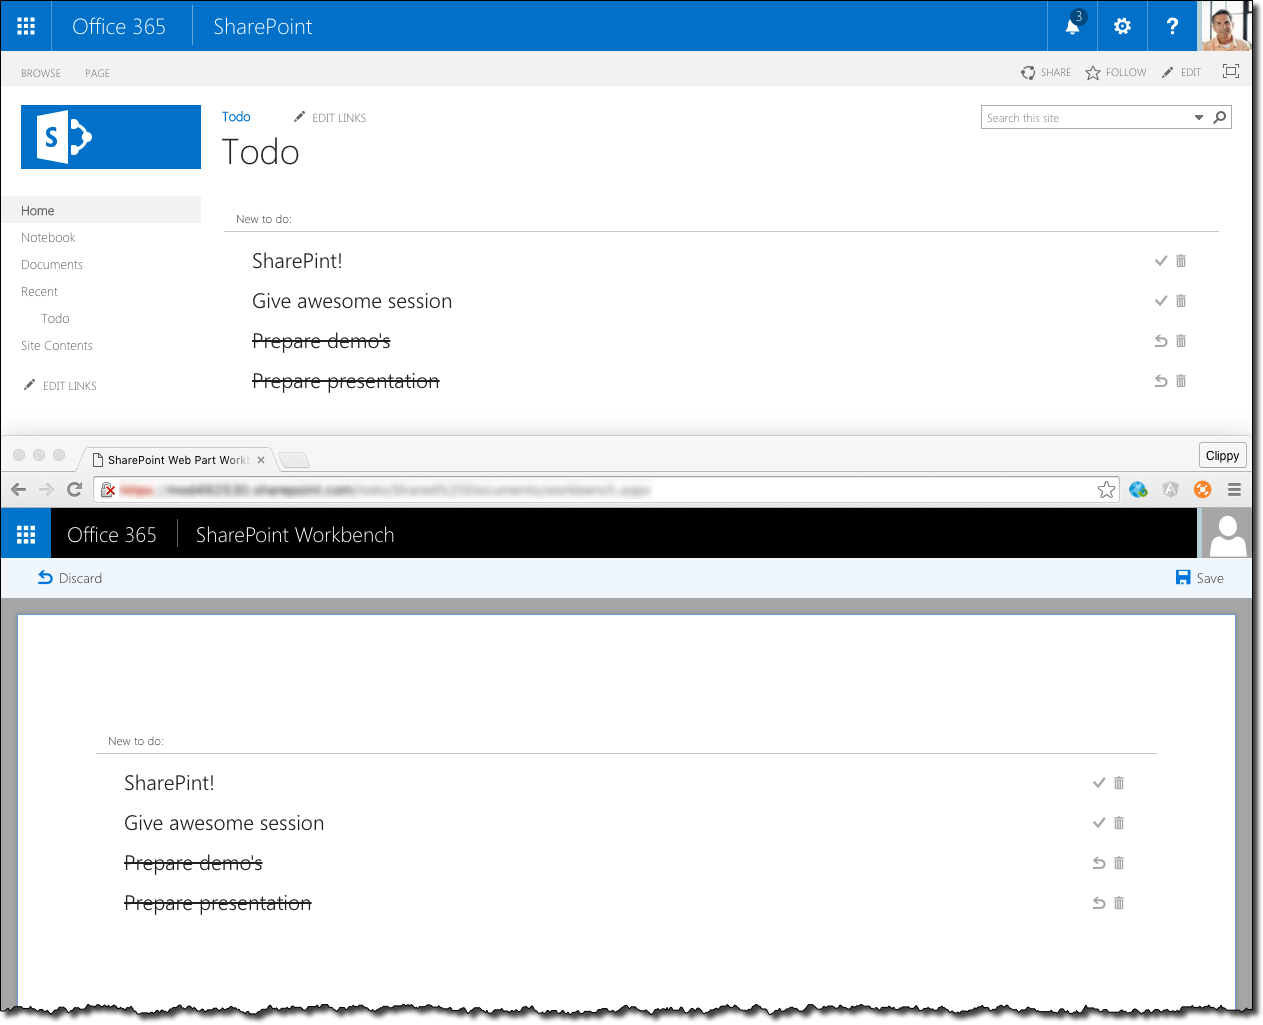 SharePoint Todo Web Part before and after the migration